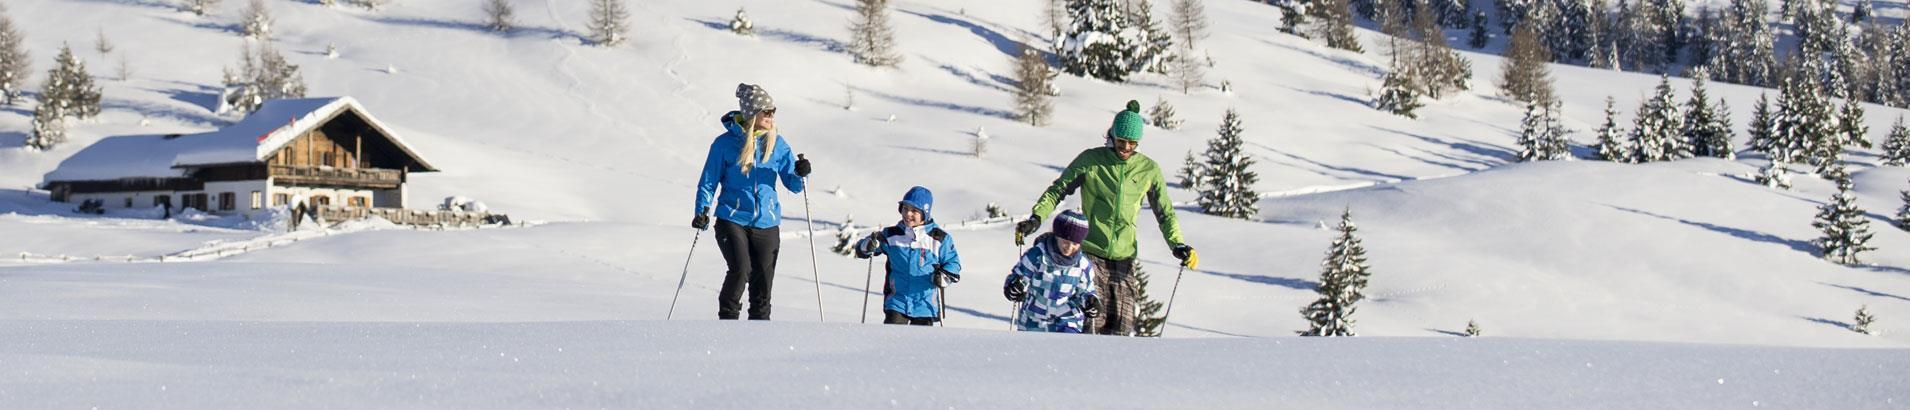 banner-familie-winter